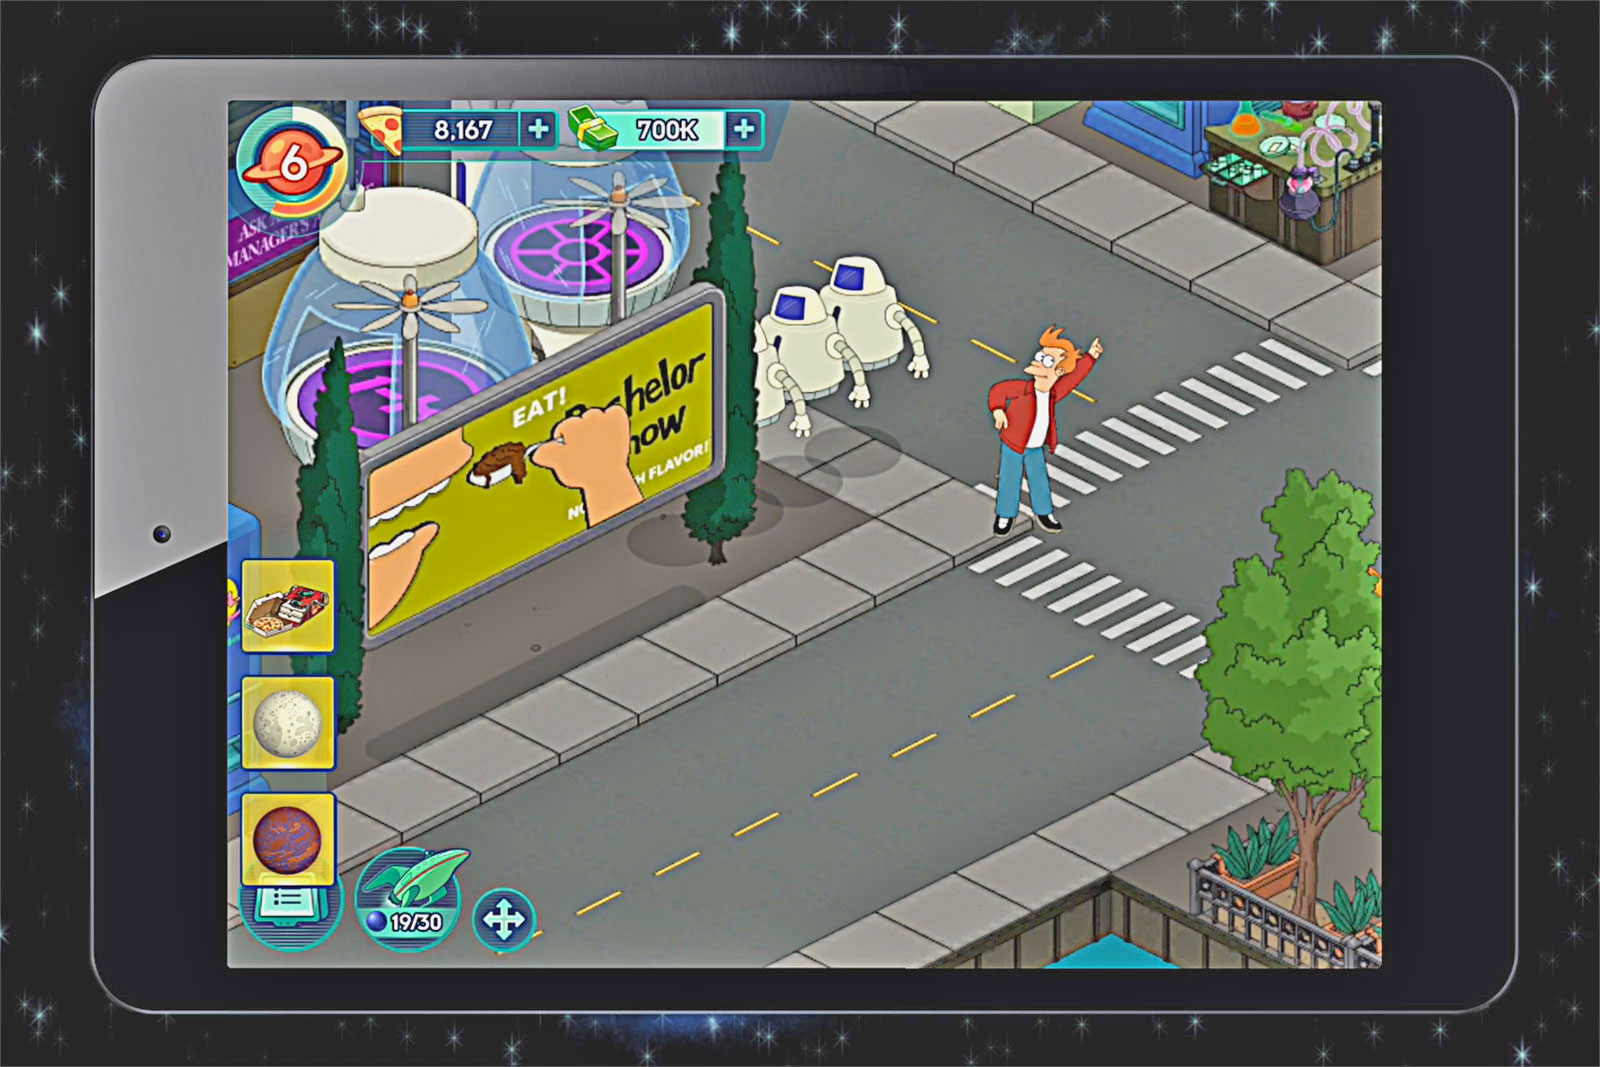 The Futurama crew returns today in a new mobile game